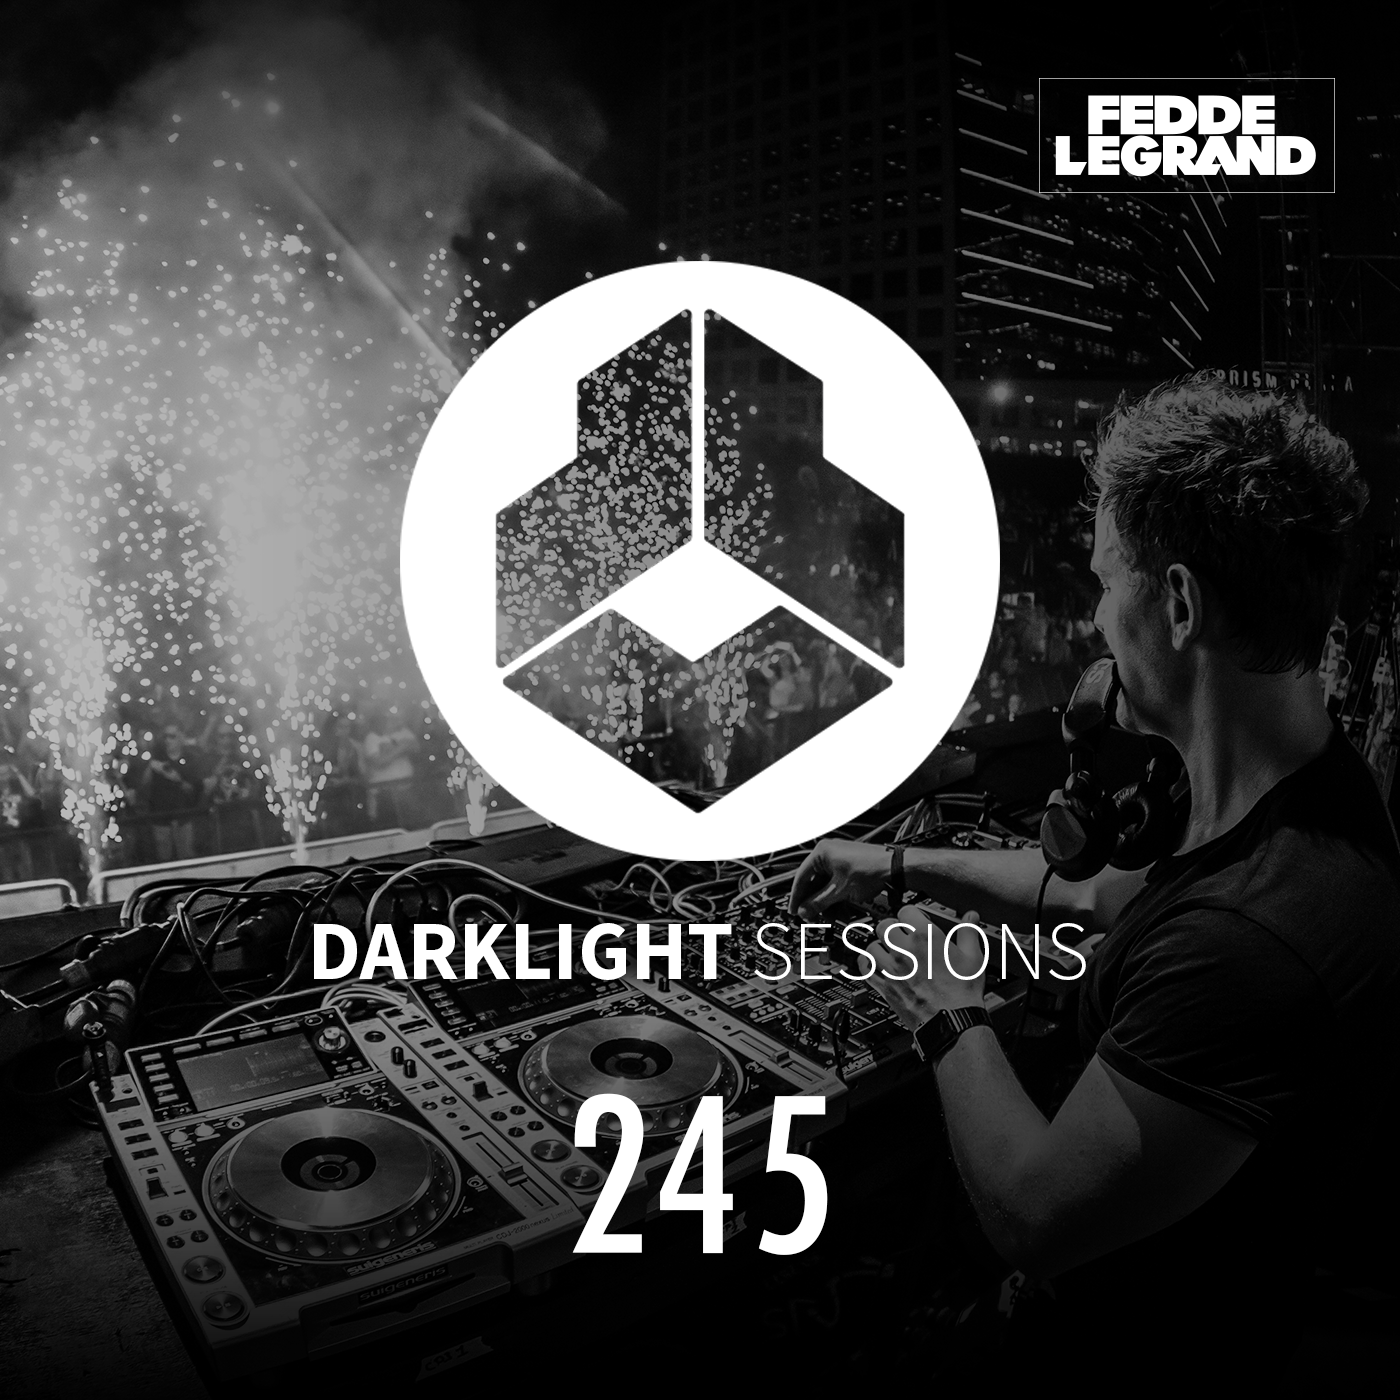 Darklight Sessions 245